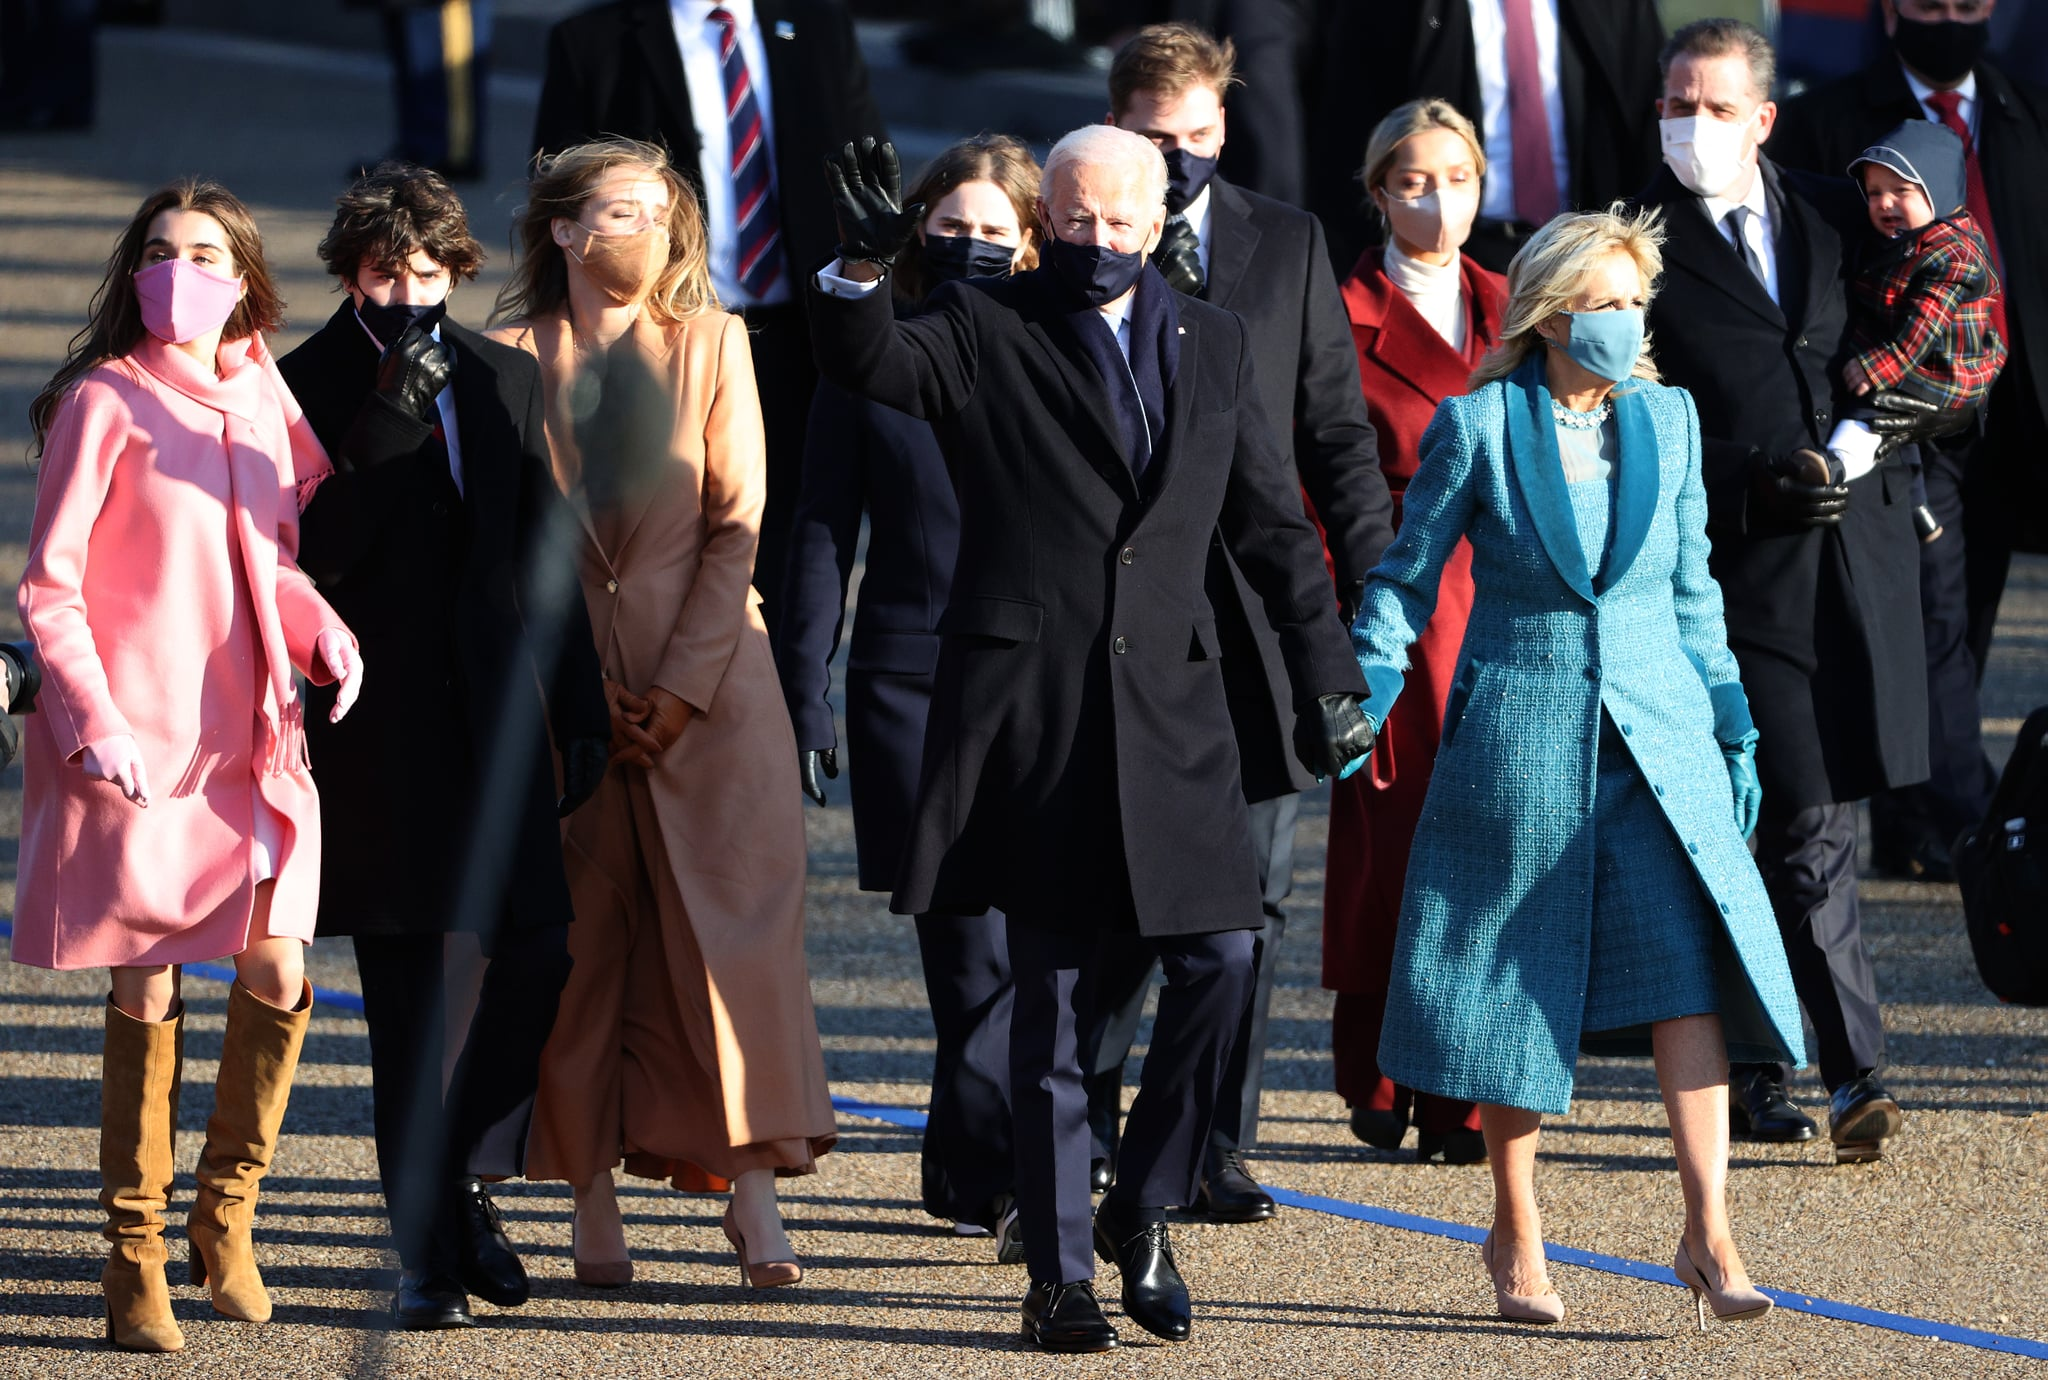 WASHINGTON, DC - JANUARY 20:  U.S. President Joe Biden and First Lady Dr. Jill Biden and family walk the abbreviated parade route after Biden's inauguration on January 20, 2021 in Washington, DC.  Biden became the 46th president of the United States earlier today during the ceremony at the U.S. Capitol.  (Photo by Patrick Smith/Getty Images)